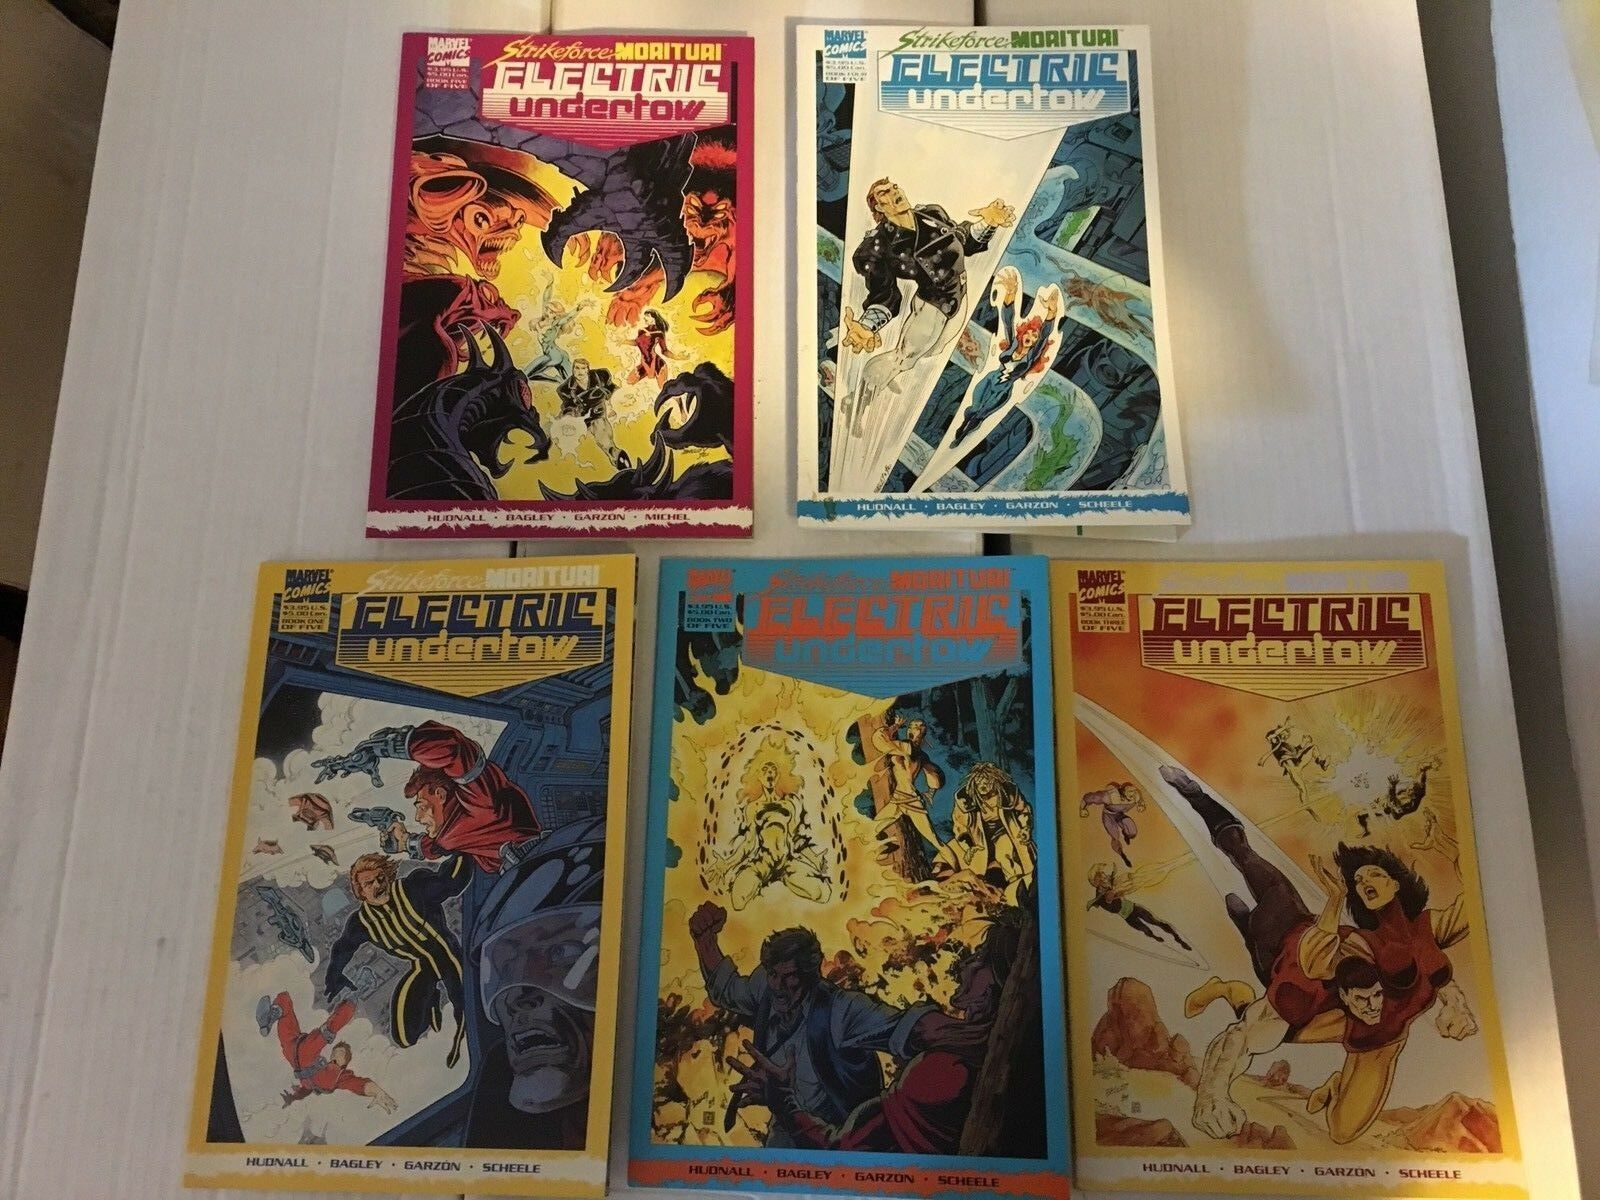 Strikeforce Morituri Electric Underflow #1 - 5 Marvel Comic Book Set 1989-90 NM